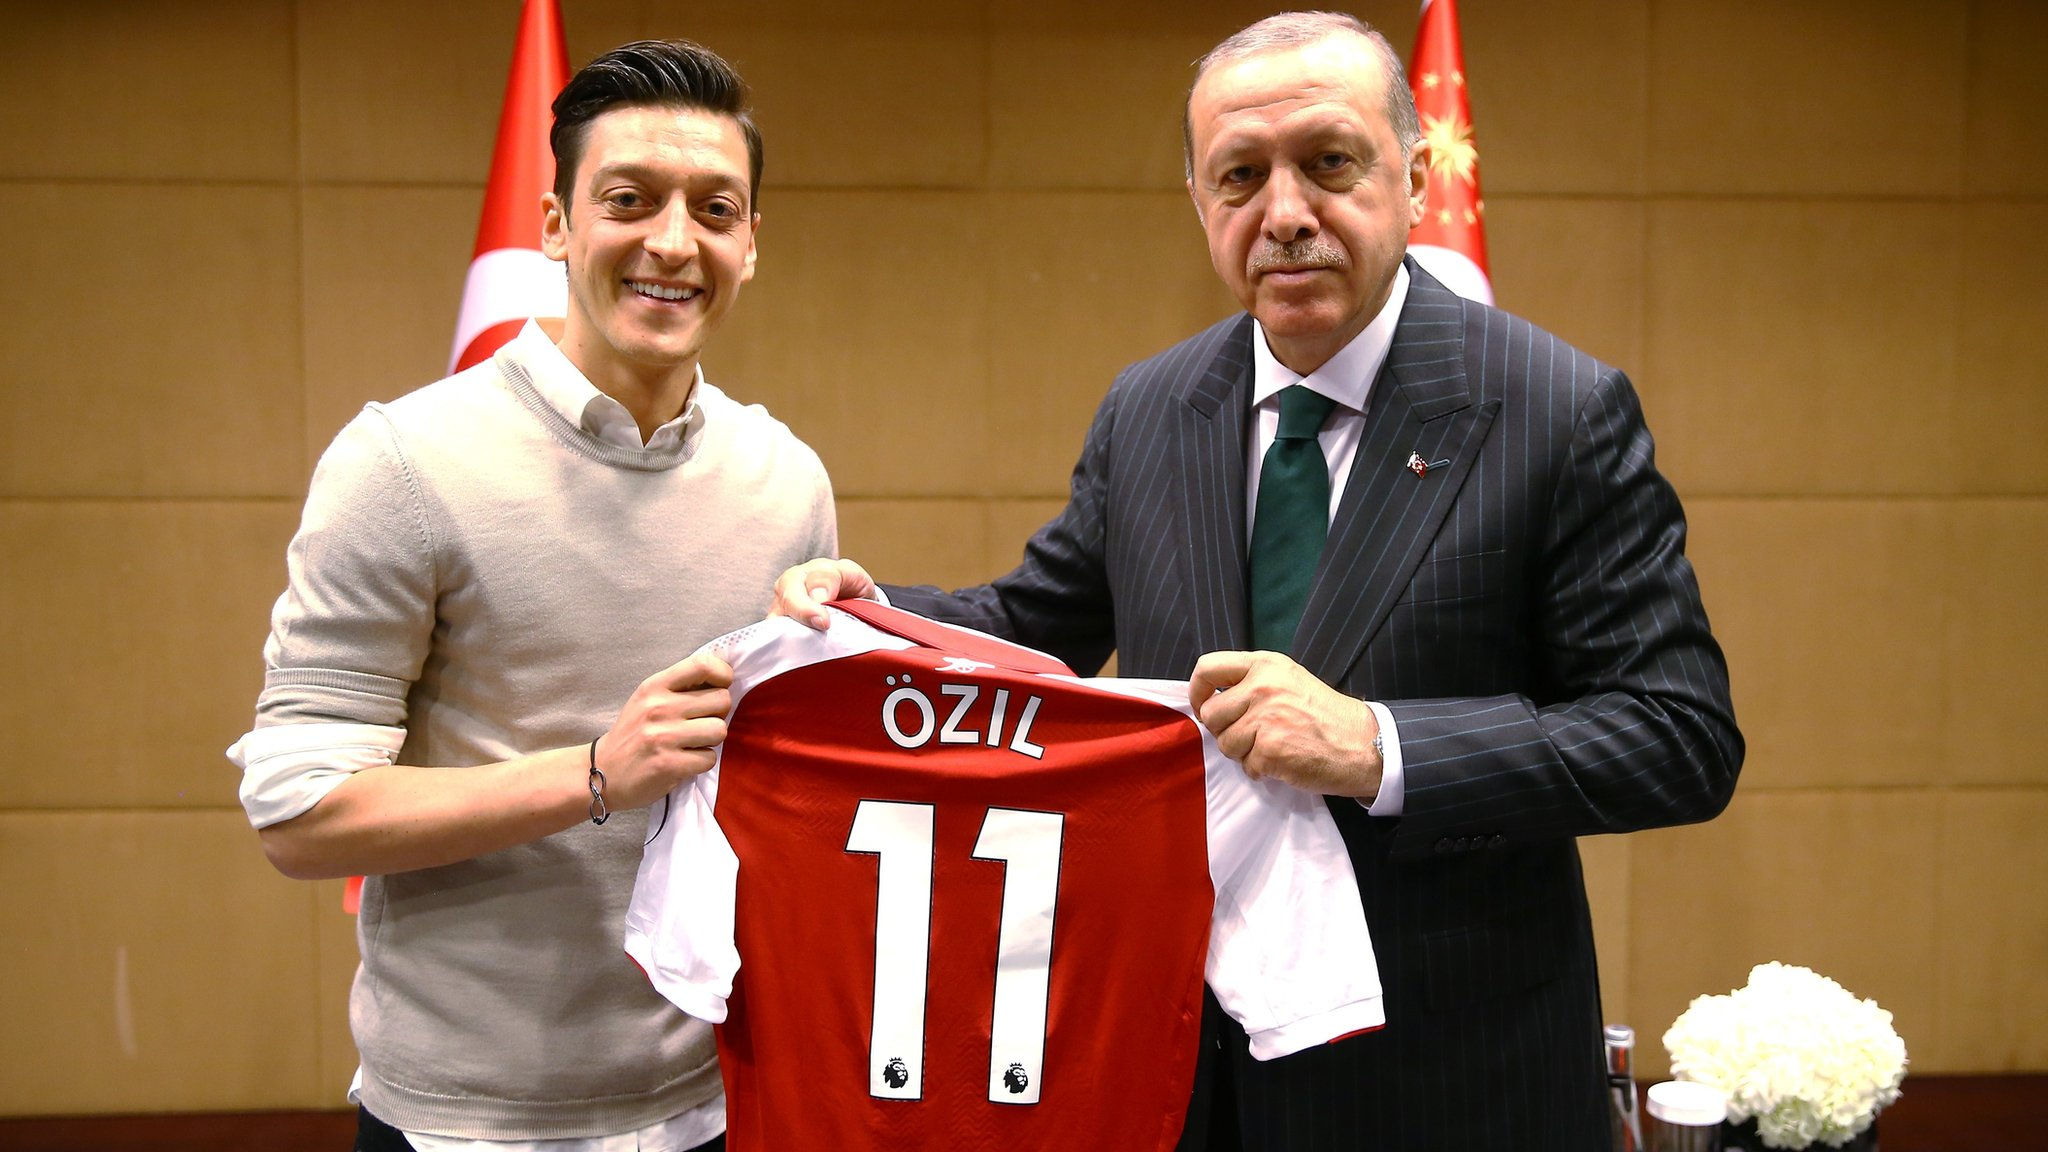 Arsenal's Ozil defends photograph with Turkish president